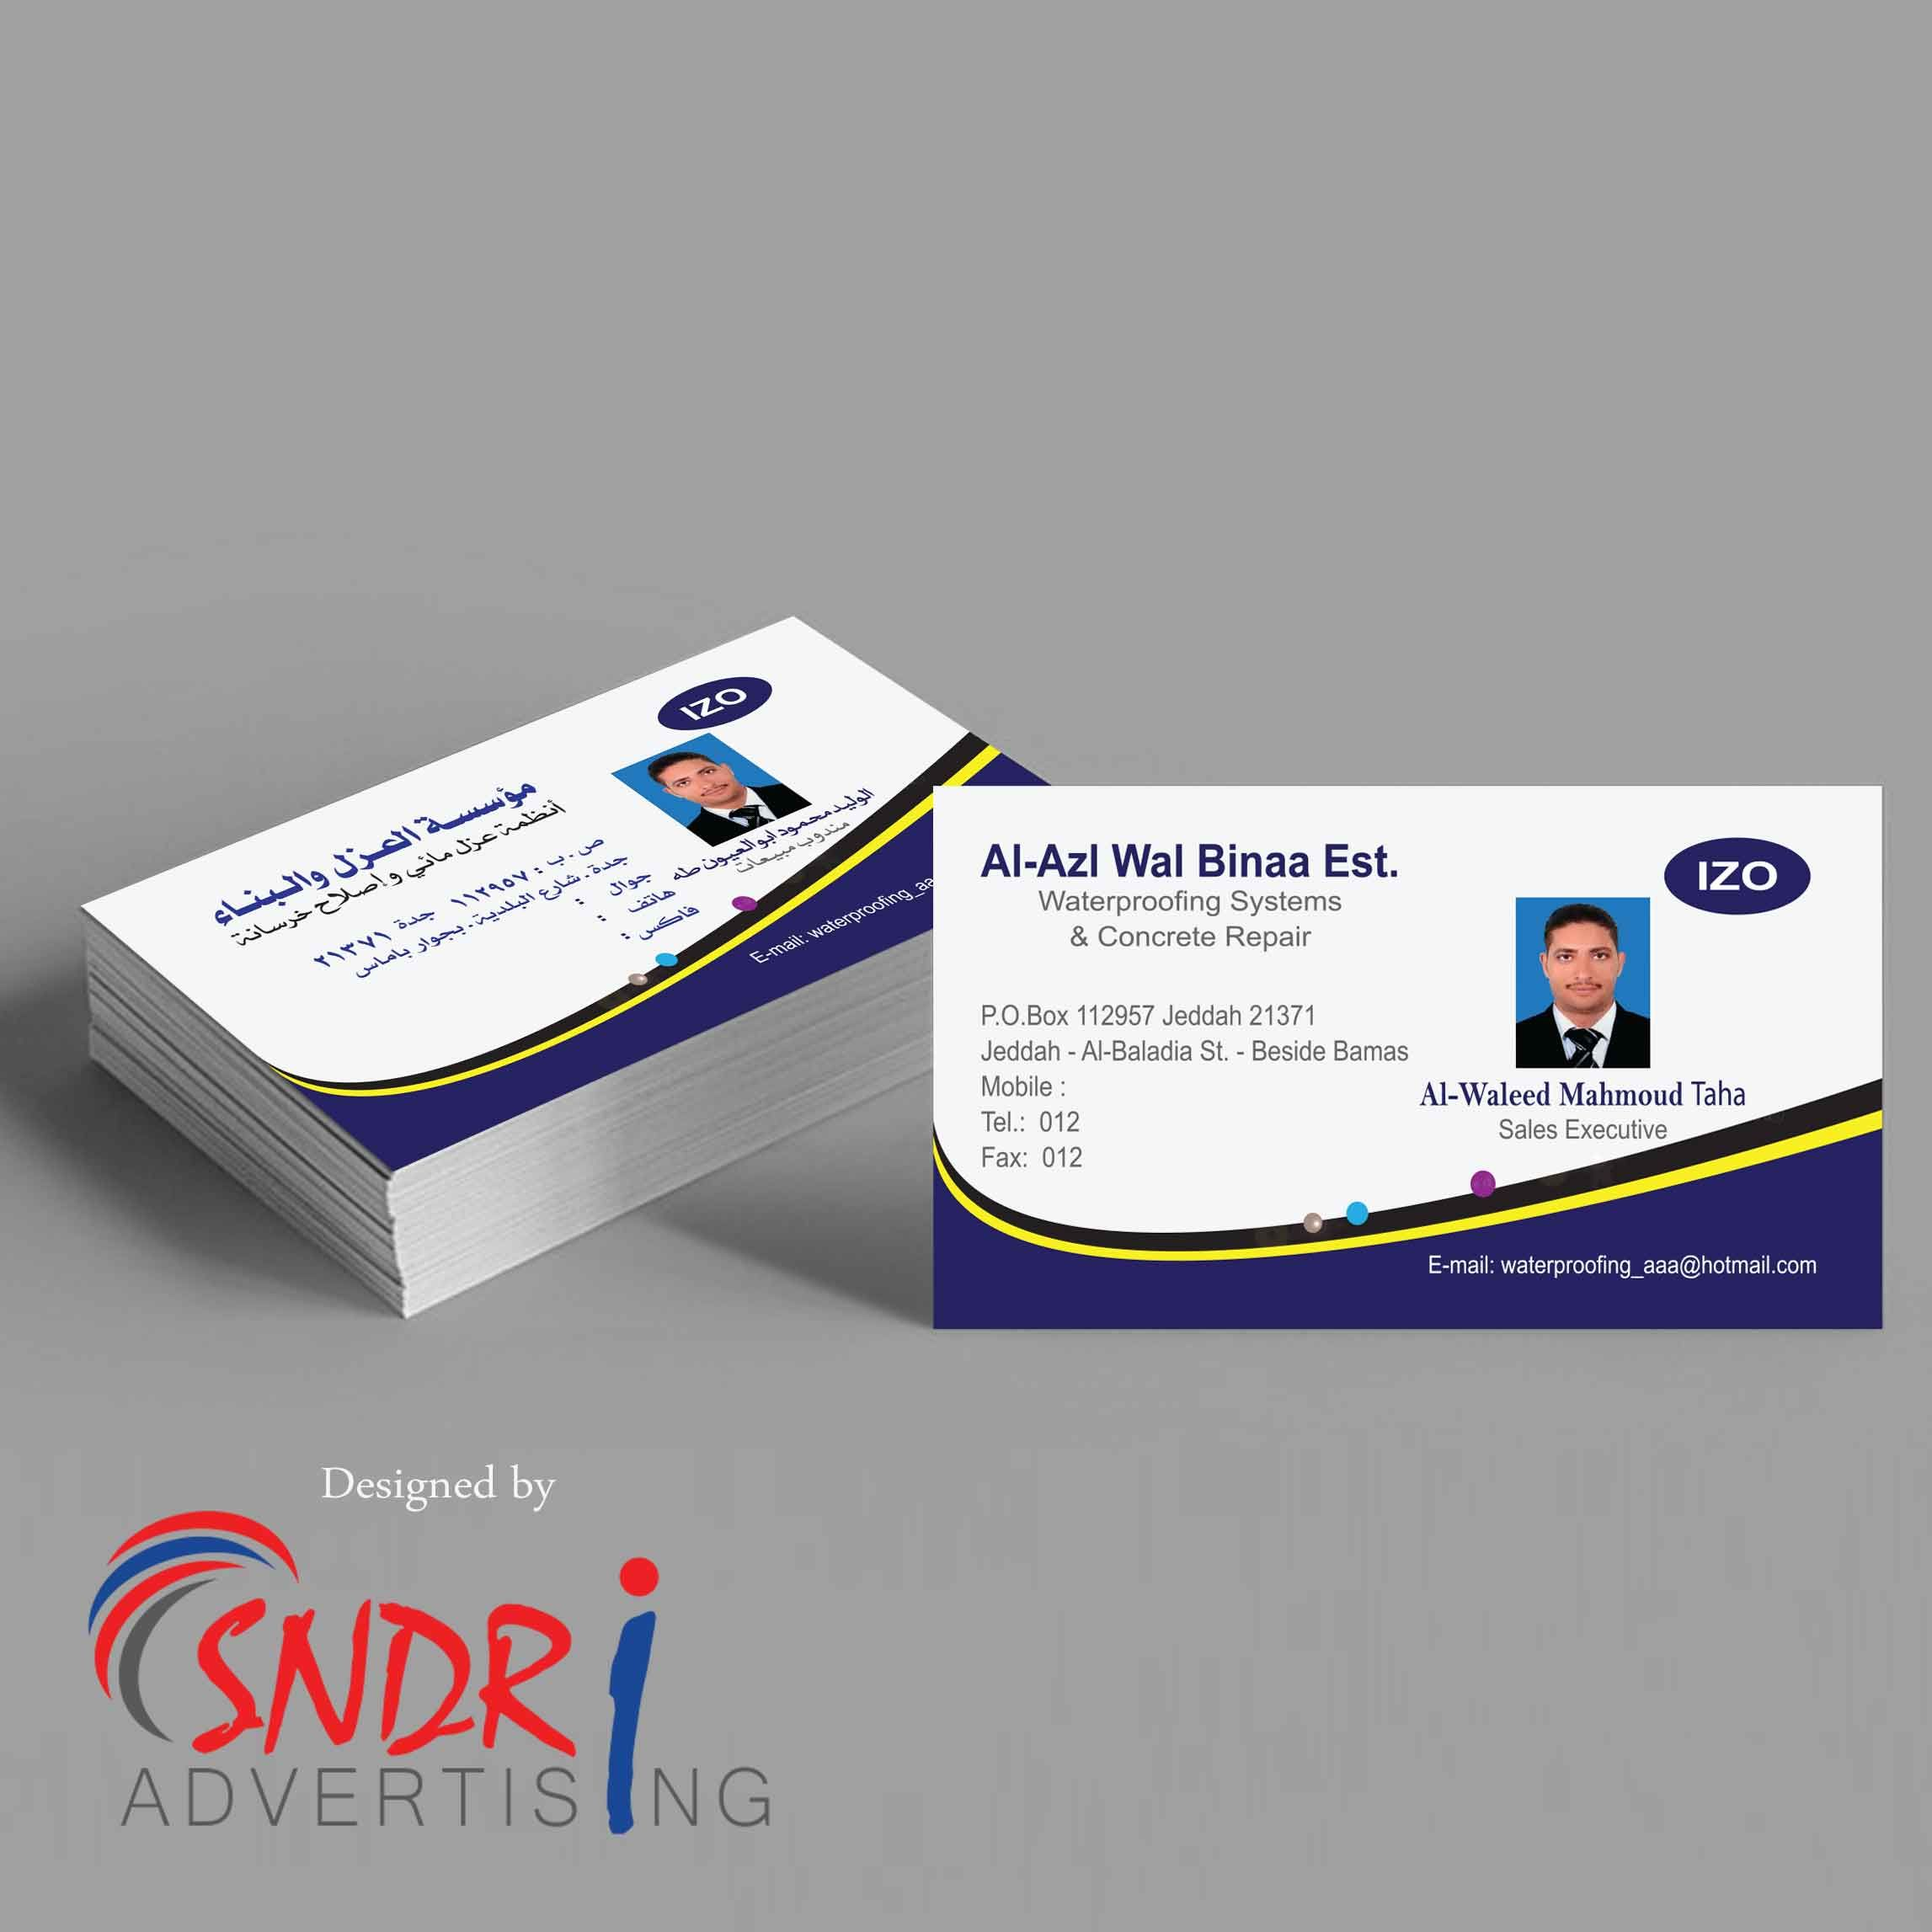 Business Card Design Services Visit Http Sndriad Com Bc Html Business Card Design Graphic Design Services Service Design